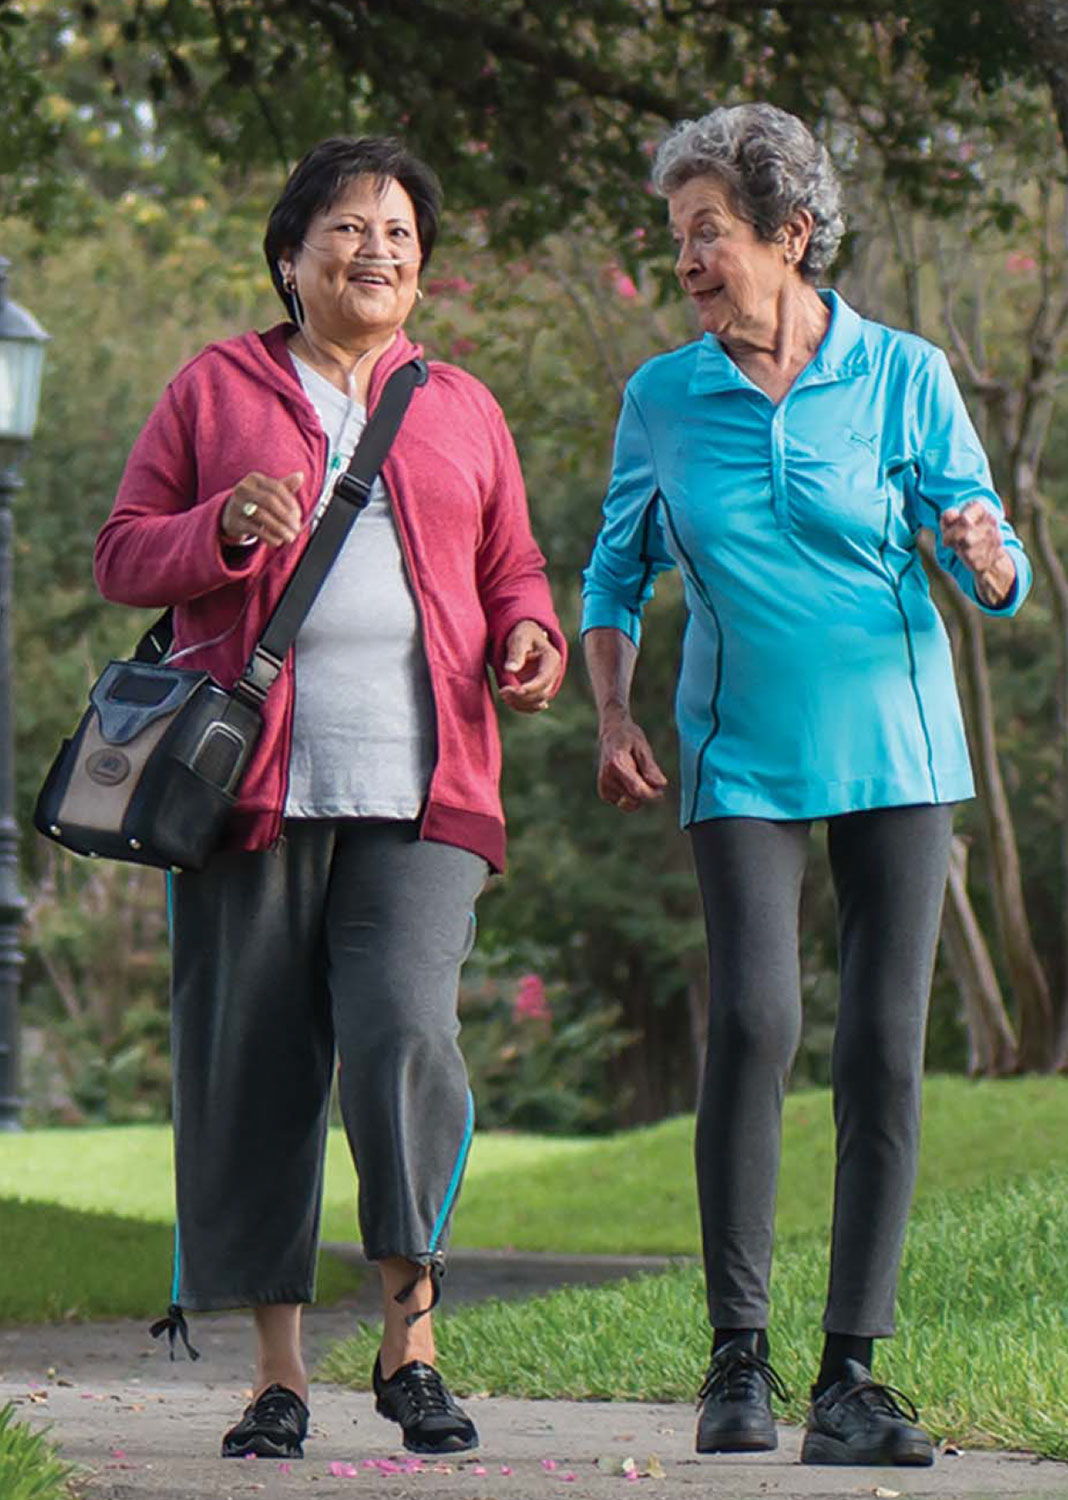 Staying Active with the LifeChoice Activox Sport